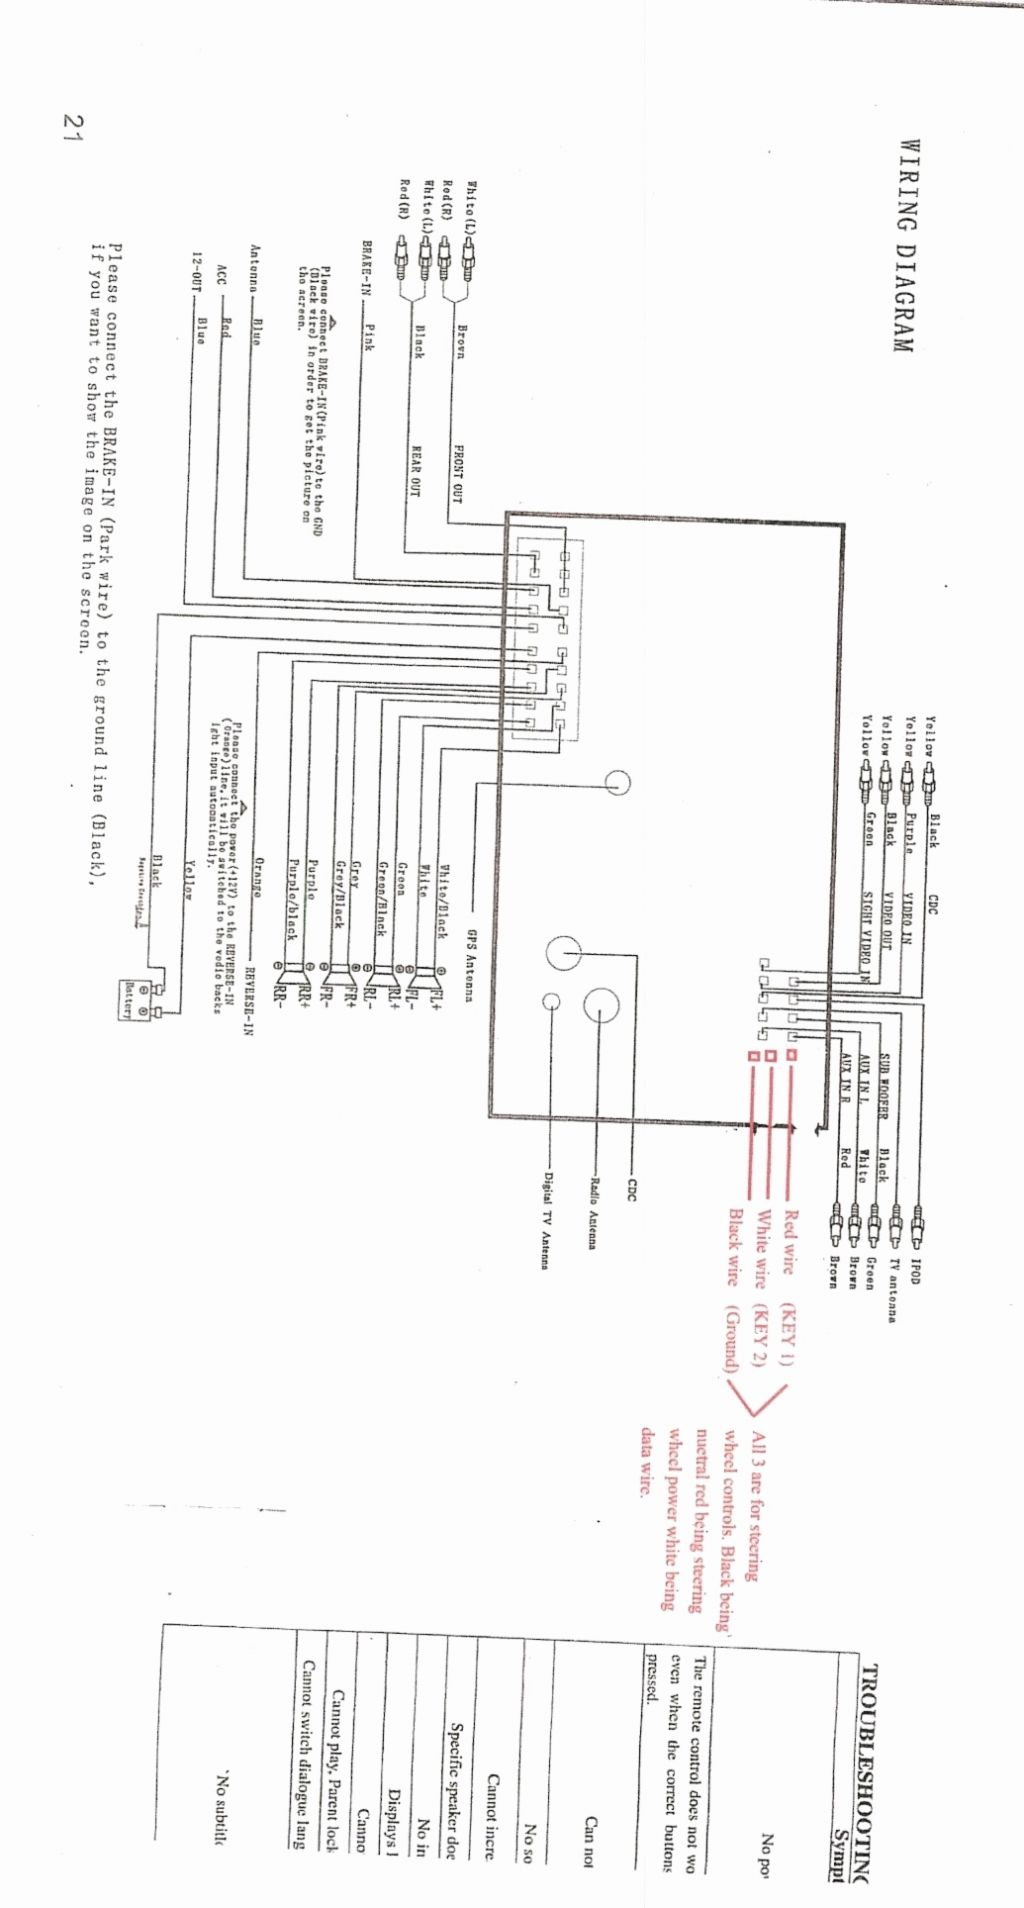 axxess steering wheel control interface wiring diagram Collection-Axxess Gmos 04 Wiring Diagram Beautiful Awesome Gmos 01 Wiring Diagram S Best For Wiring 19-r